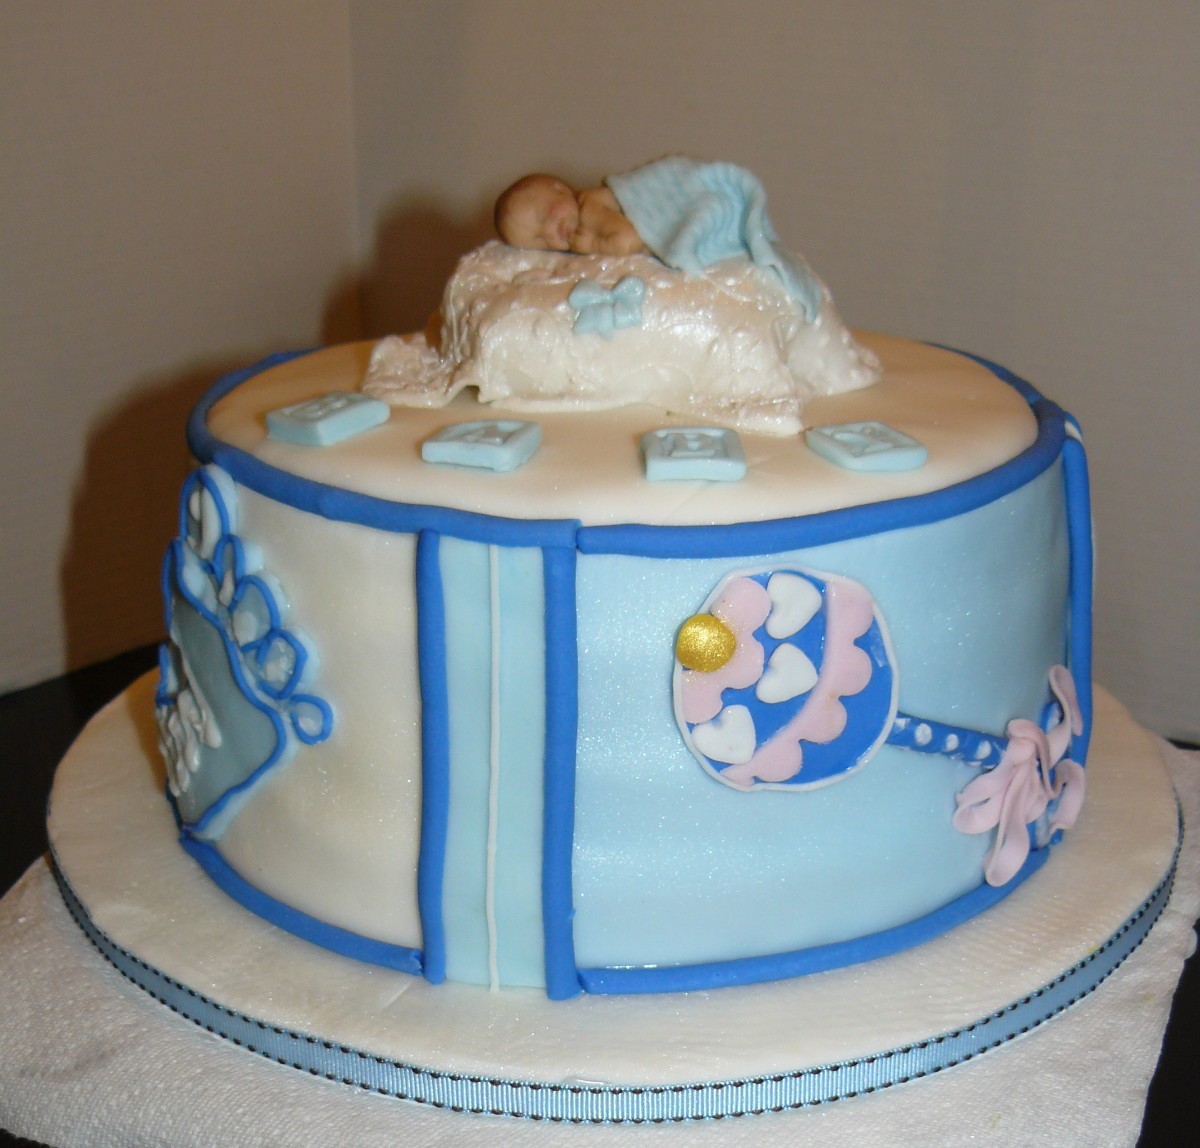 Cake Decorating Ideas Baby Shower : 10 Gorgeous Cake Designs For Baby Shower CAKE DESIGN AND ...